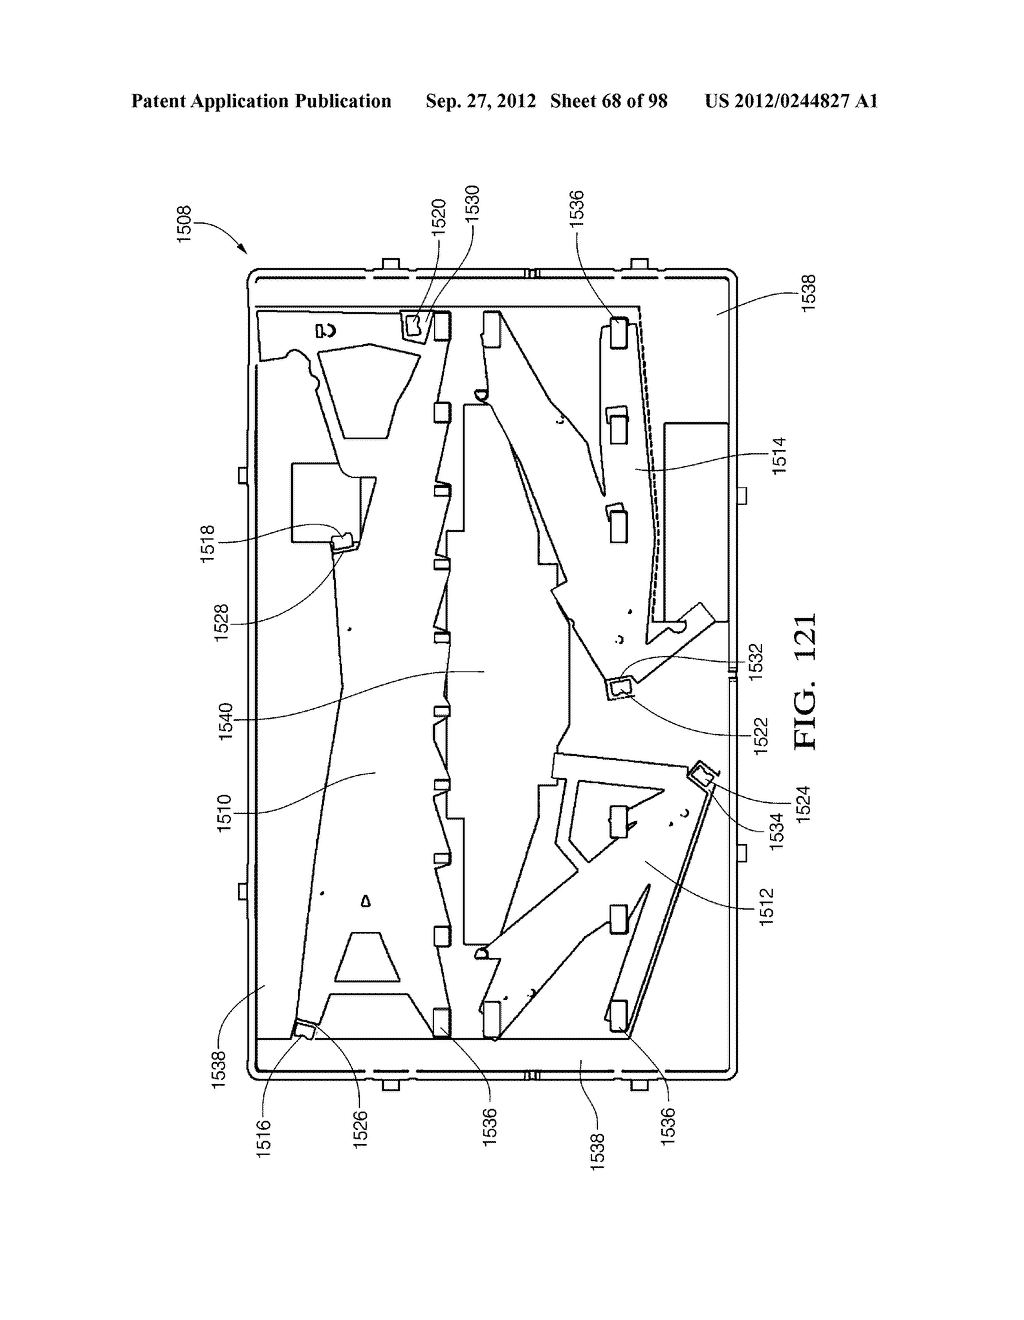 LIGHTWEIGHT AUDIO SYSTEM FOR AUTOMOTIVE APPLICATIONS AND METHOD - diagram, schematic, and image 69